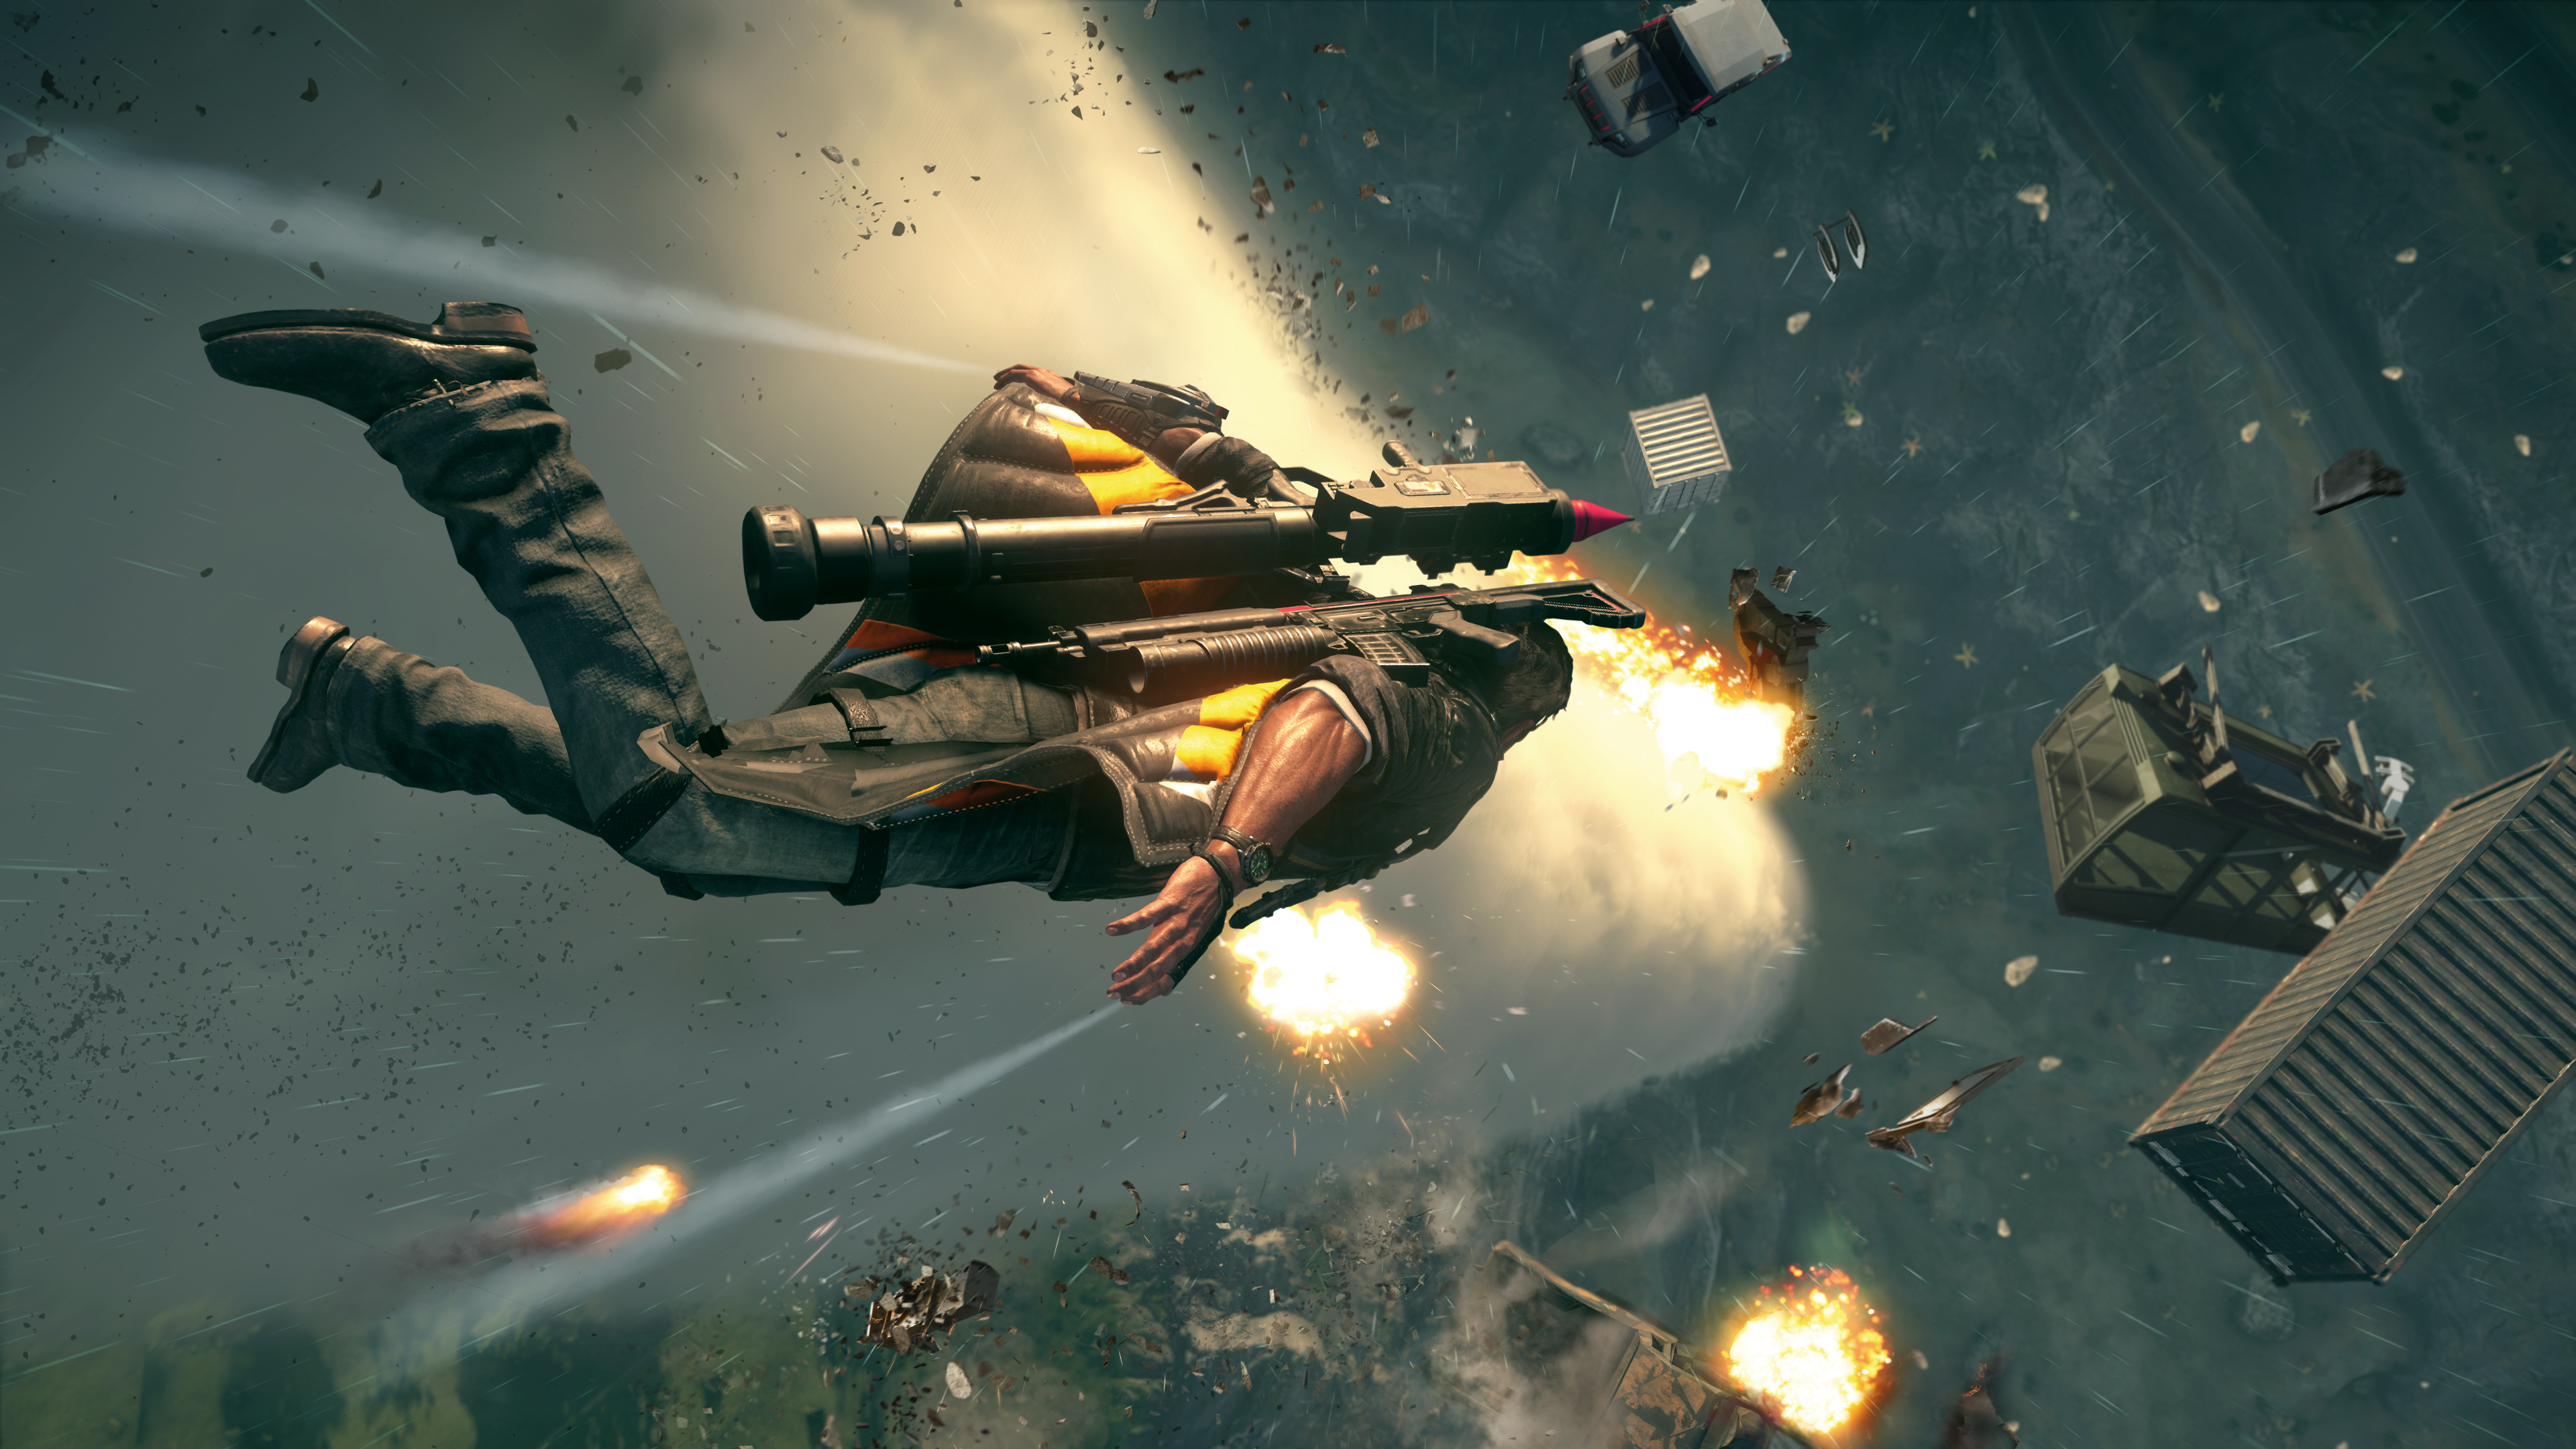 Aperçu Just Cause 4 Rico Rodriguez tombe le long d'une tornade